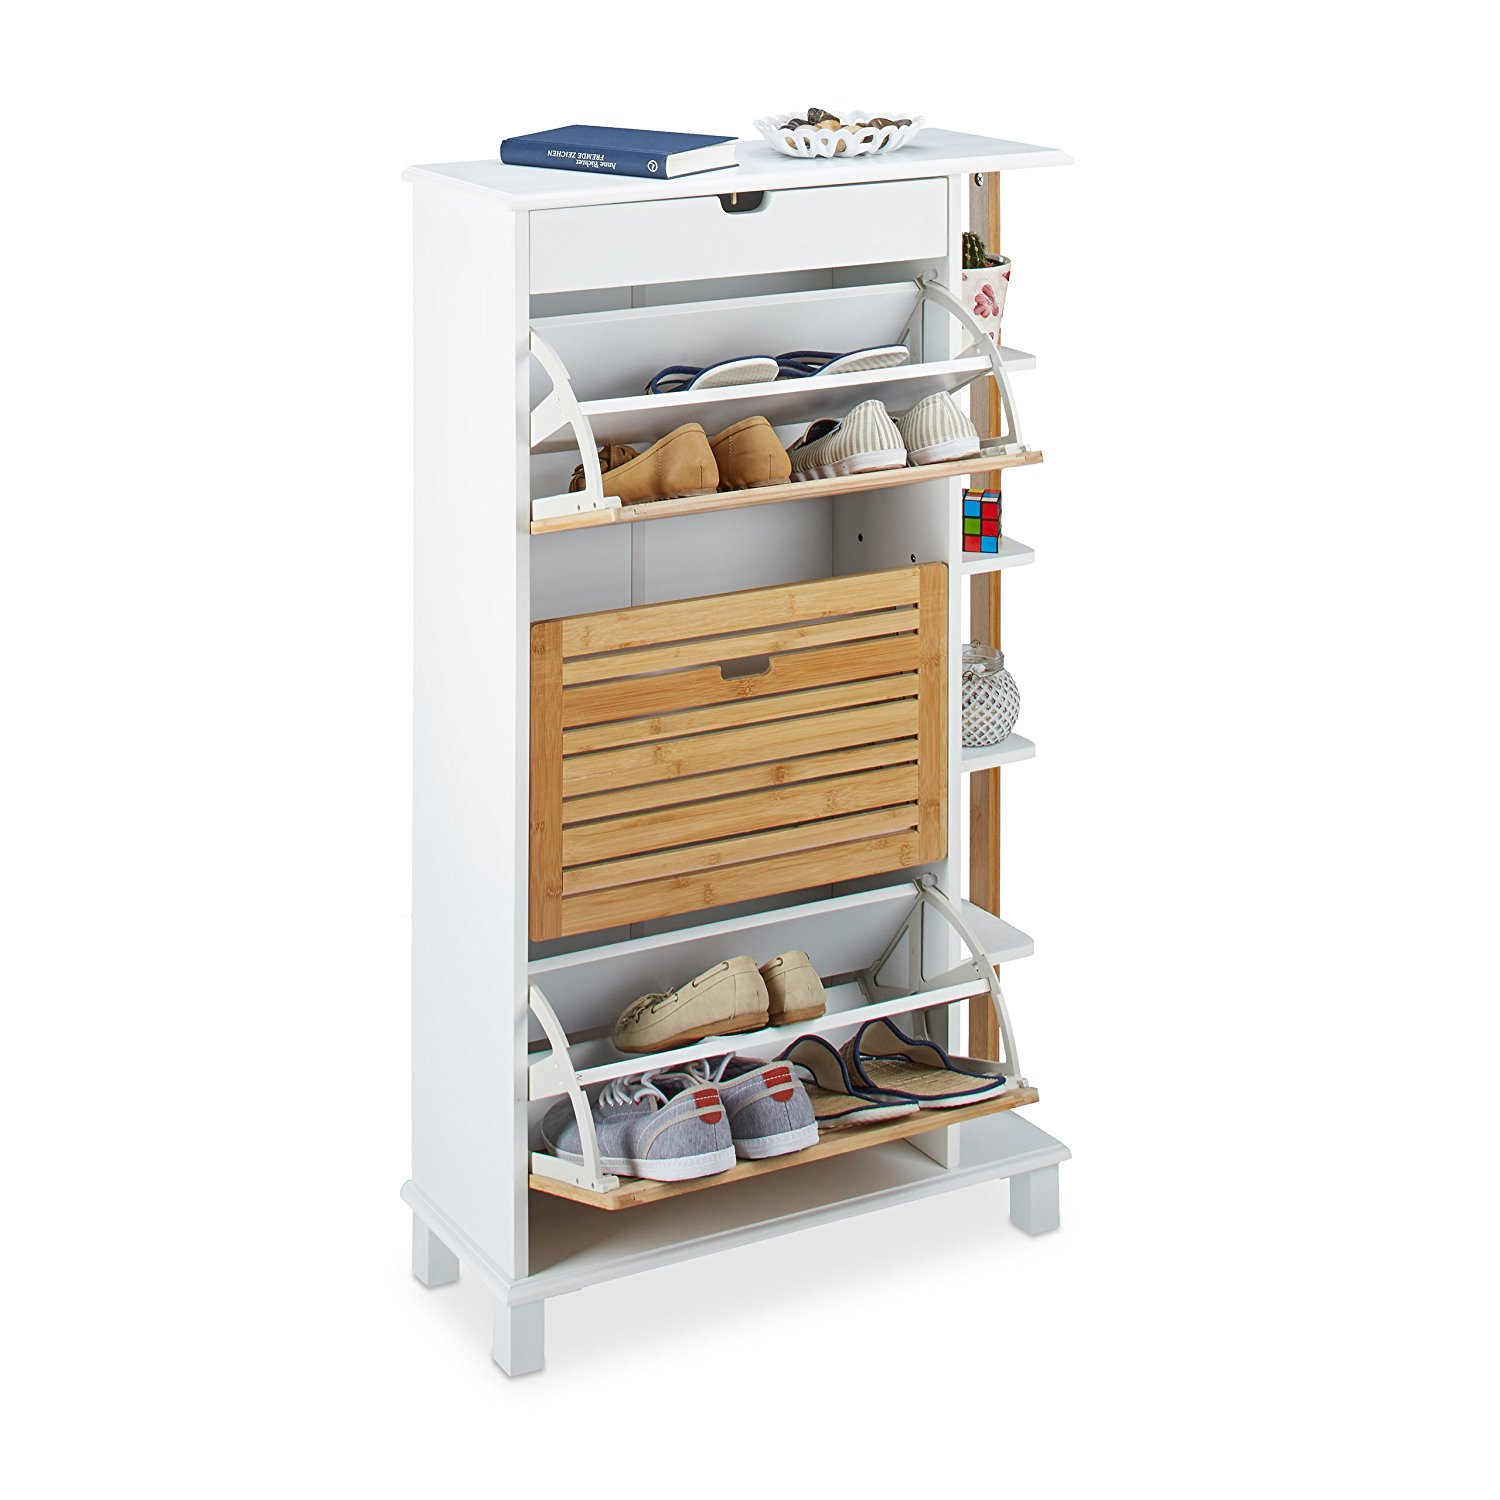 Relaxdays Tip Forward Shoe Holder for 12 Pairs, Shoe Rack with Drawer and Bamboo Lids, Wooden Shoe Closet, White